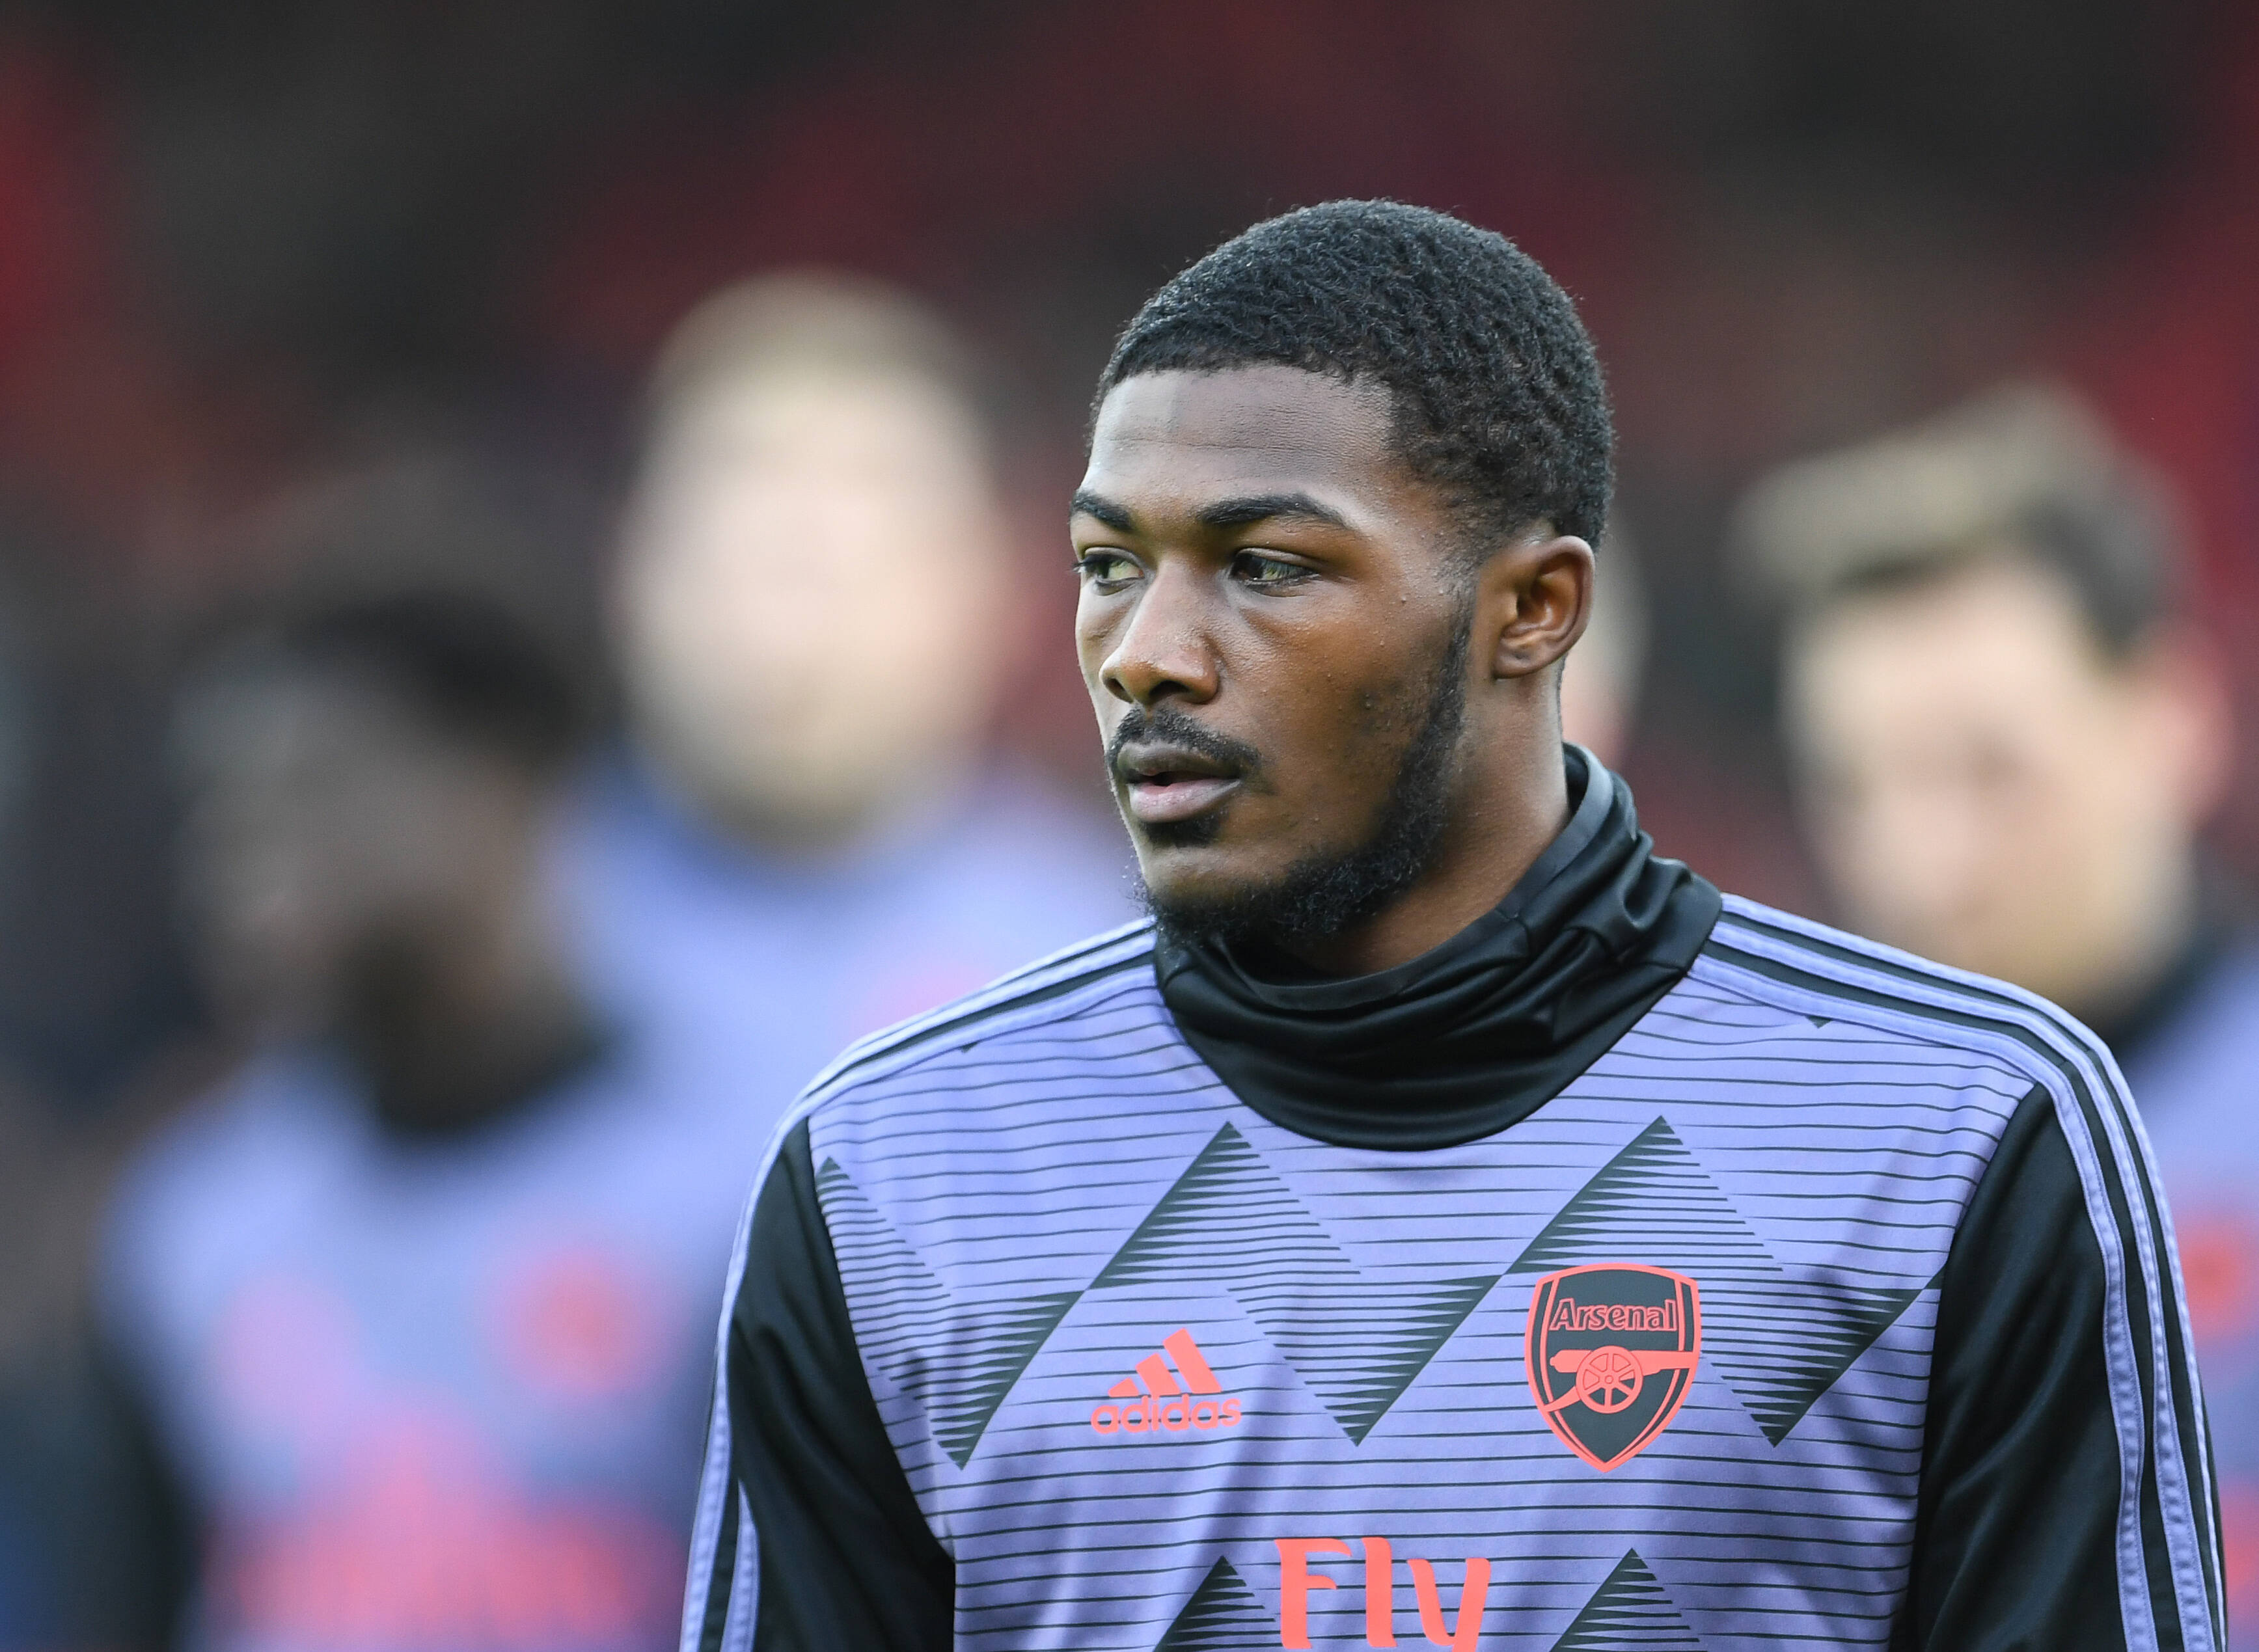 Tottenham are interested in Arsenal's Ainsley Maitland-Niles - A shock target.